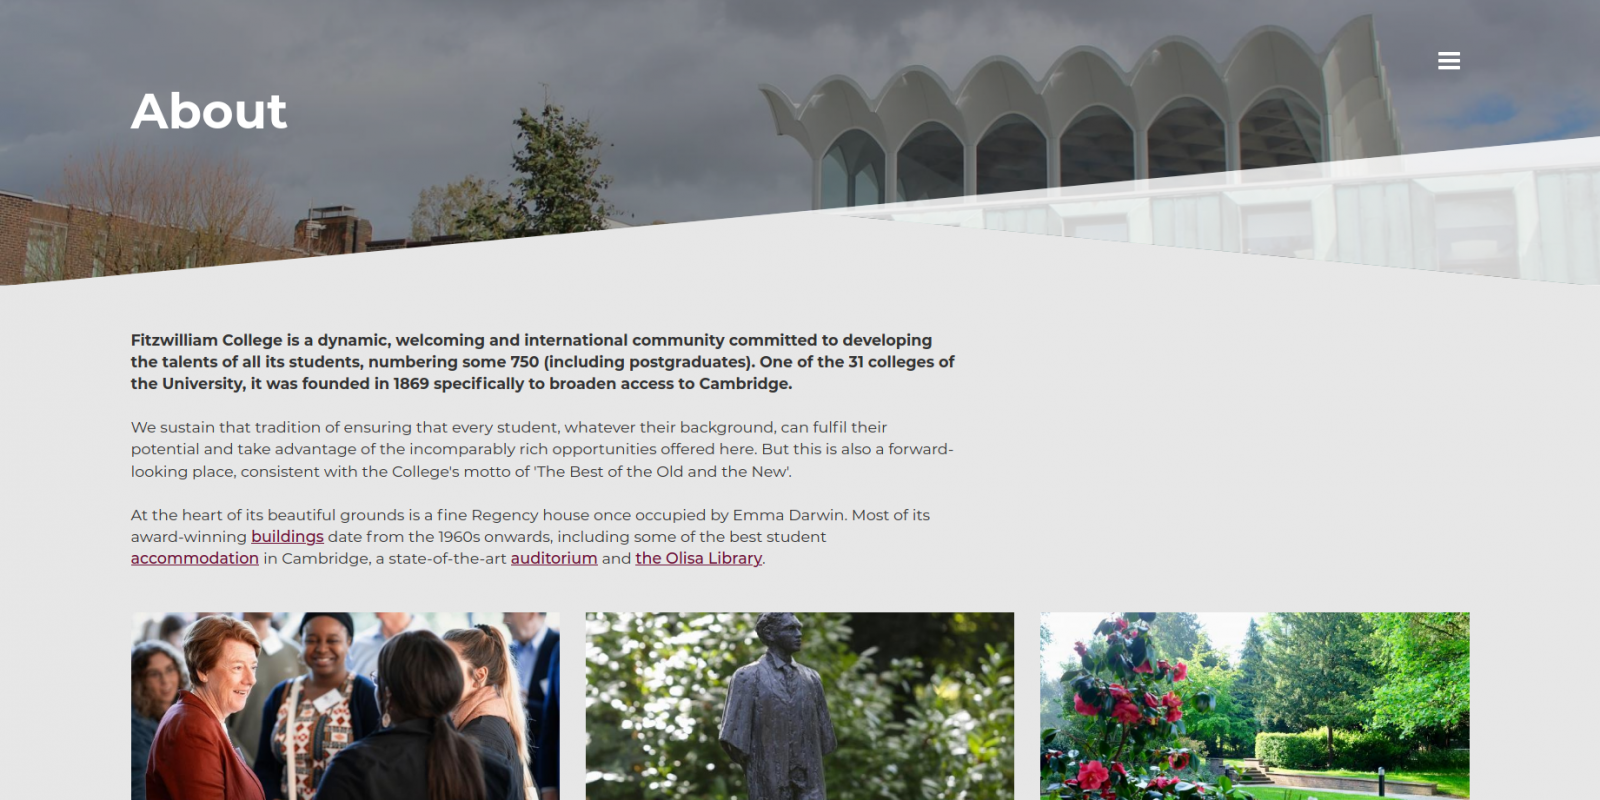 Fitzwilliam College, University of Cambridge - website about page